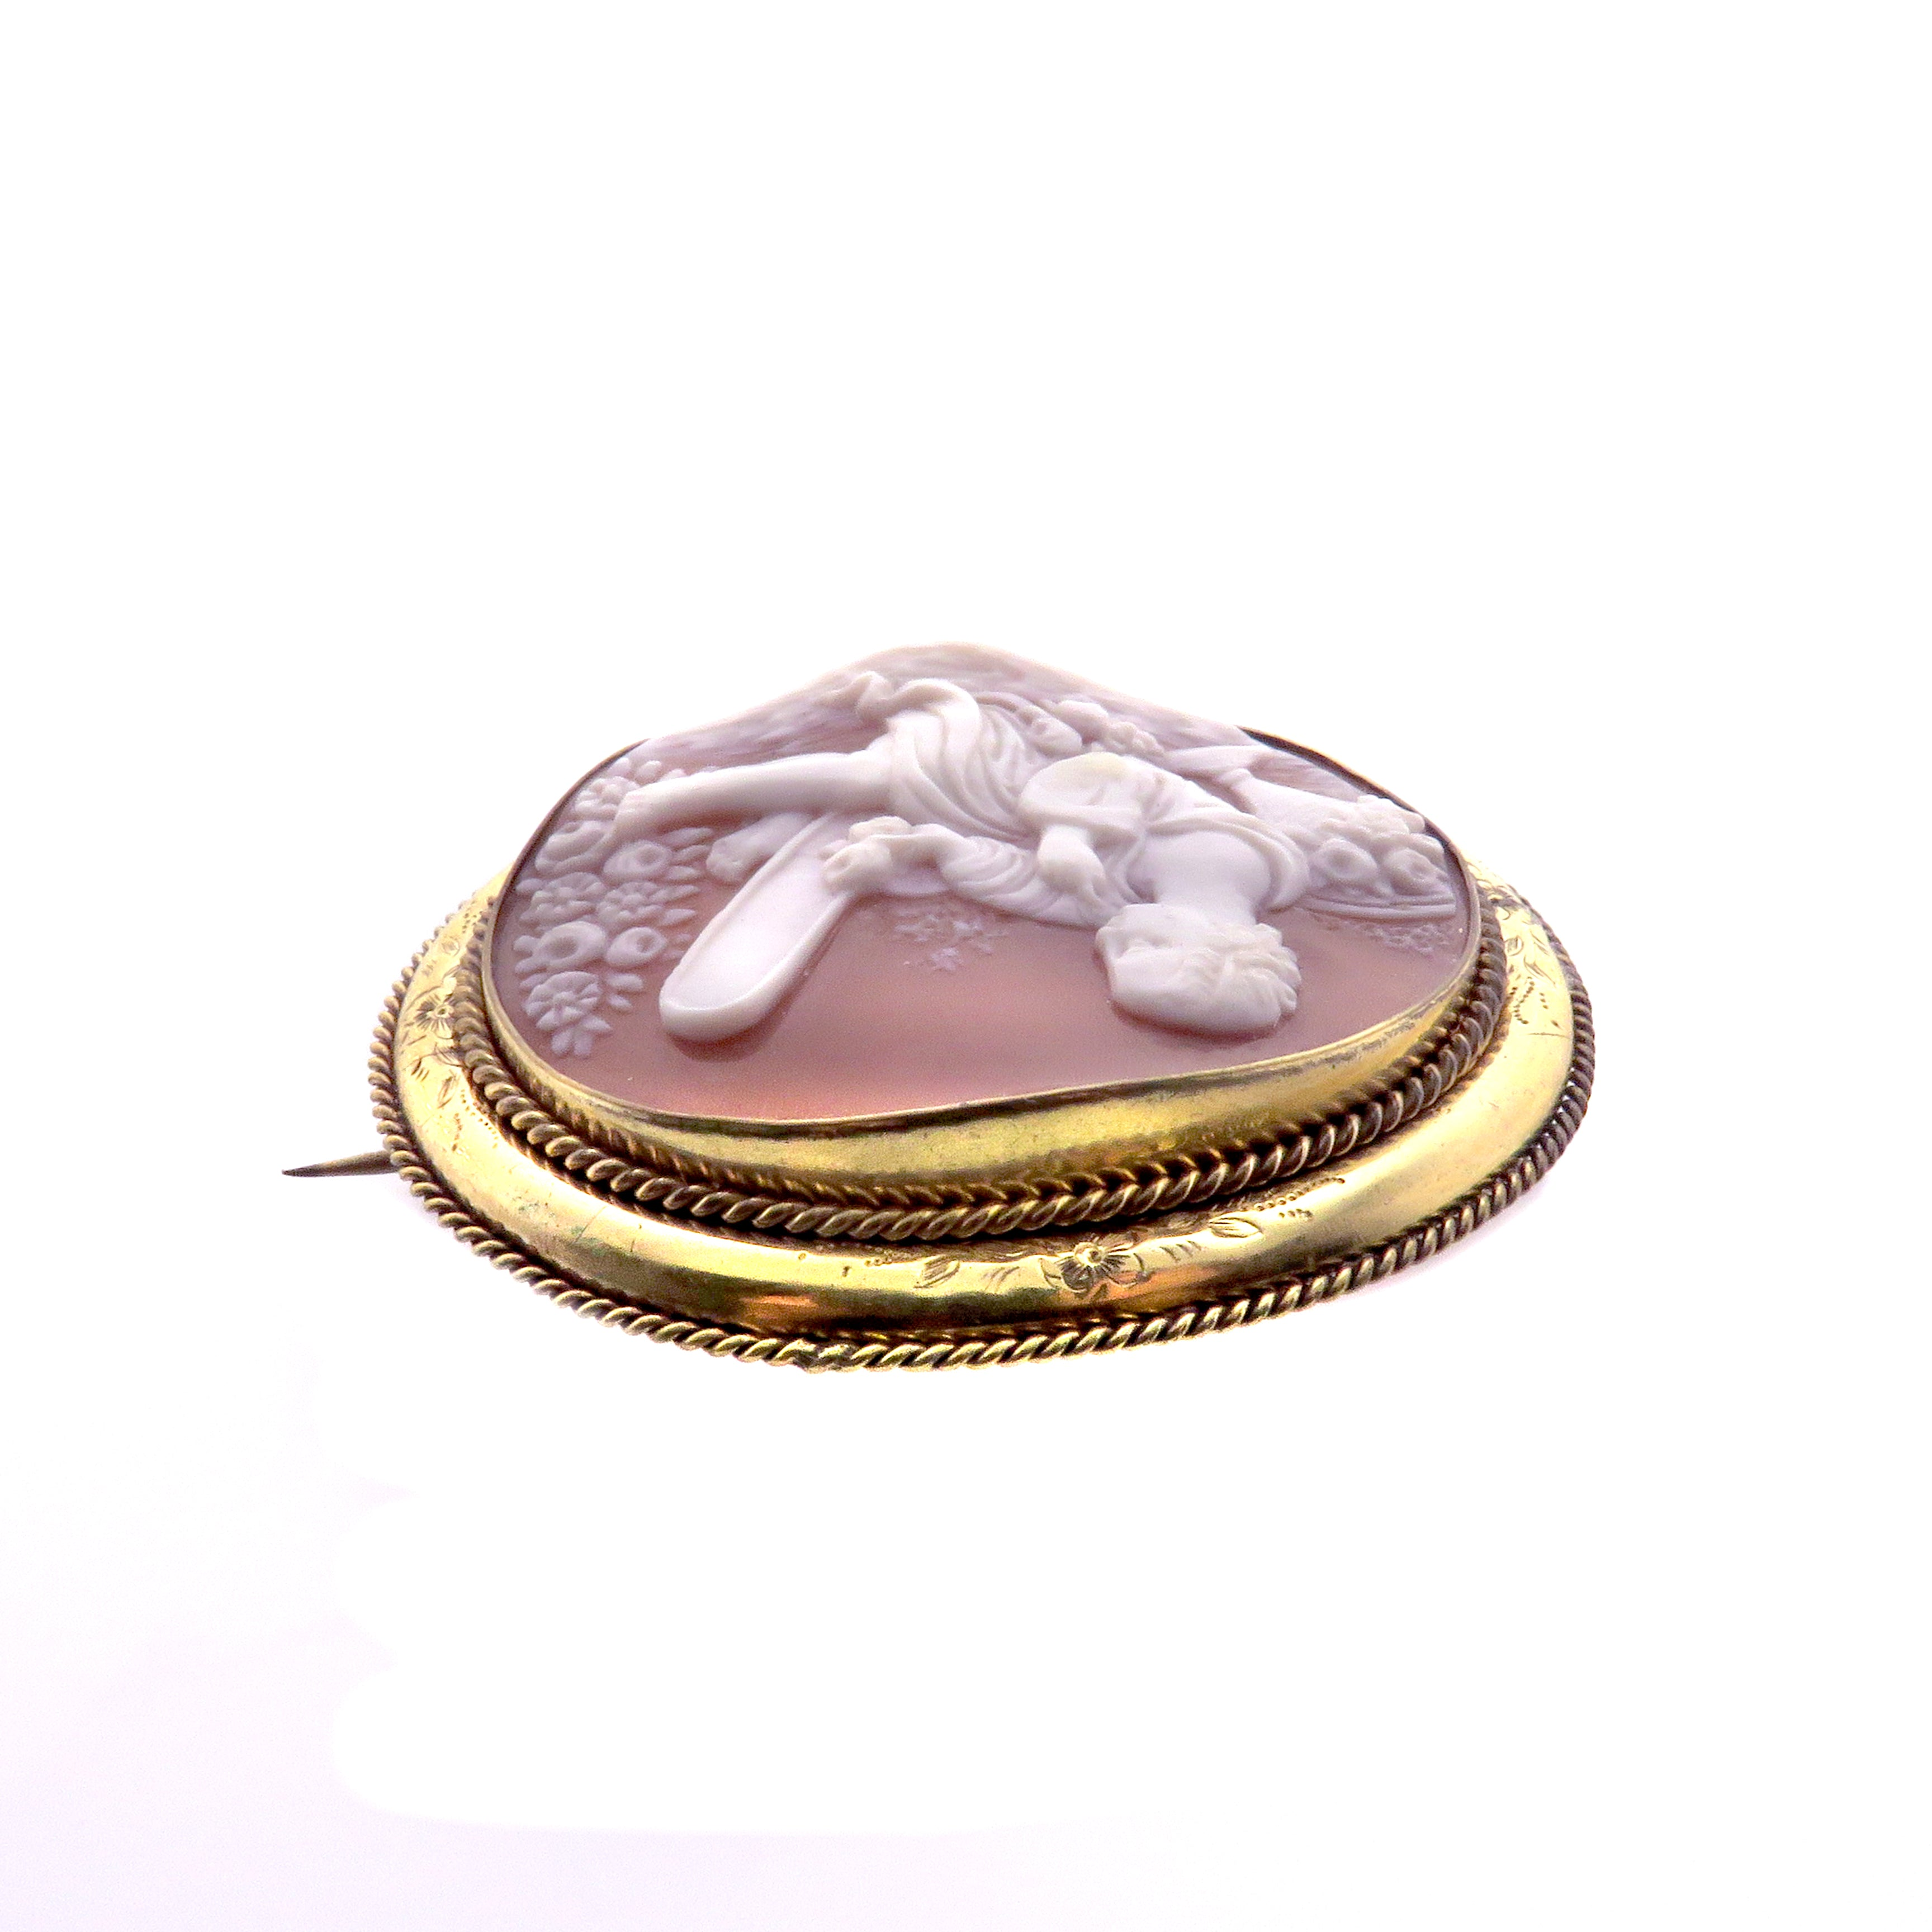 Gold Filled Shell Cameo Brooch of Vanitas